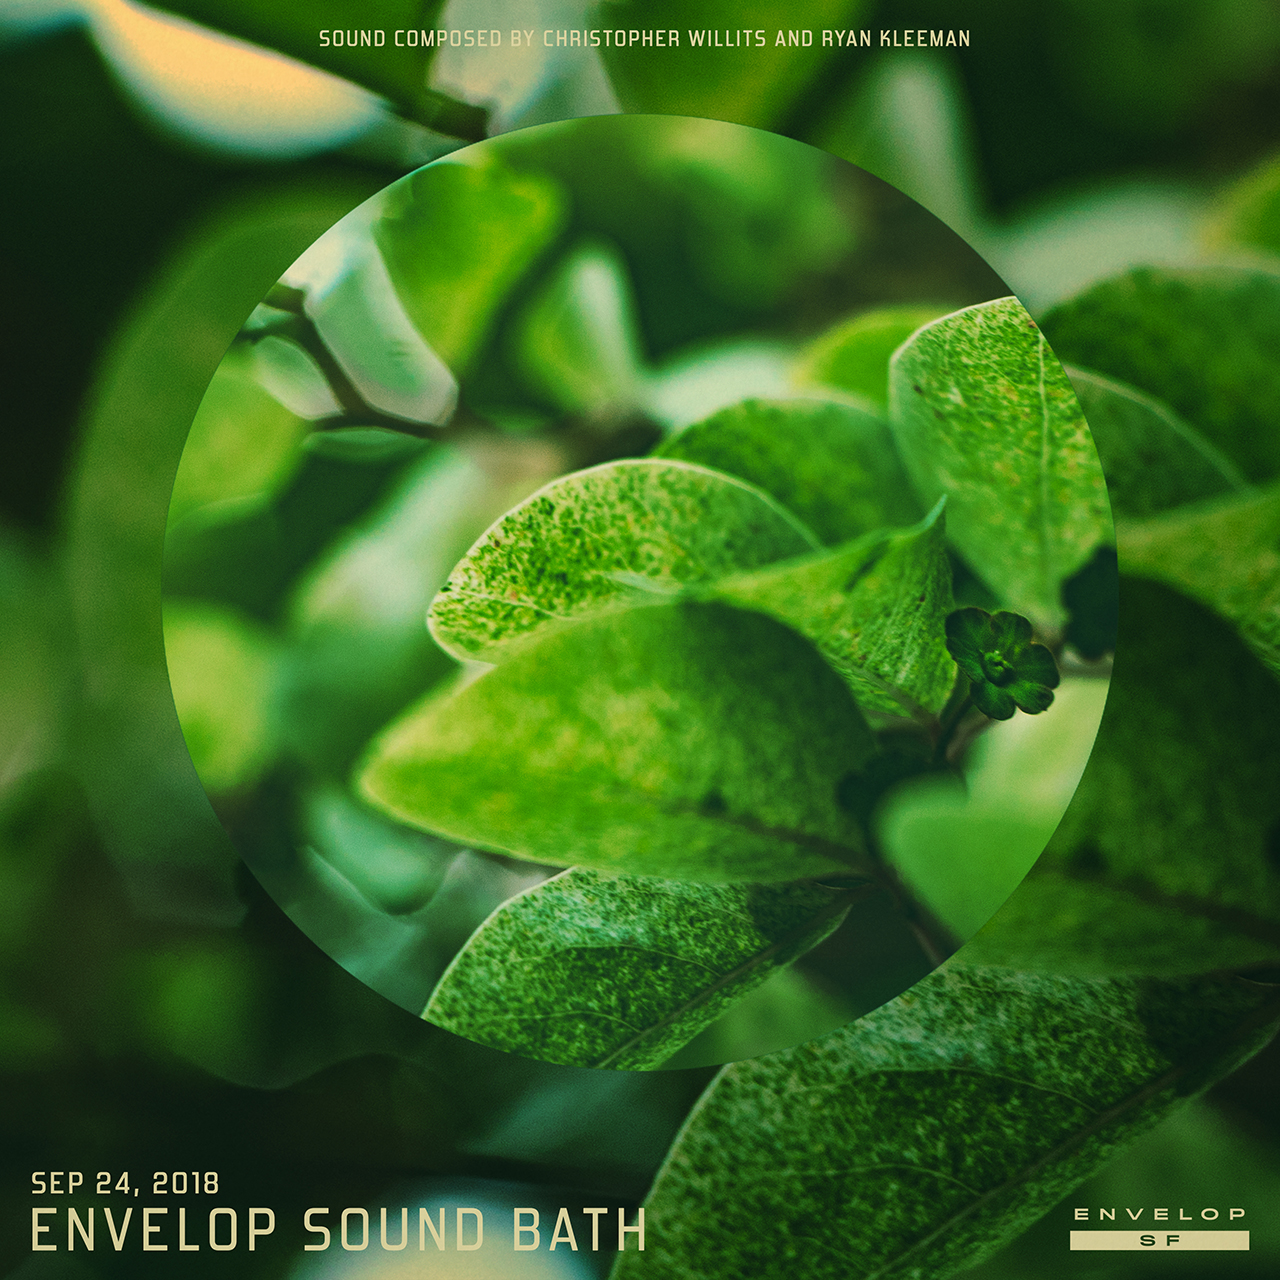 Envelop Sound Bath  Mon, September 24, 2018 | At Envelop SF | 7:30 PM doors